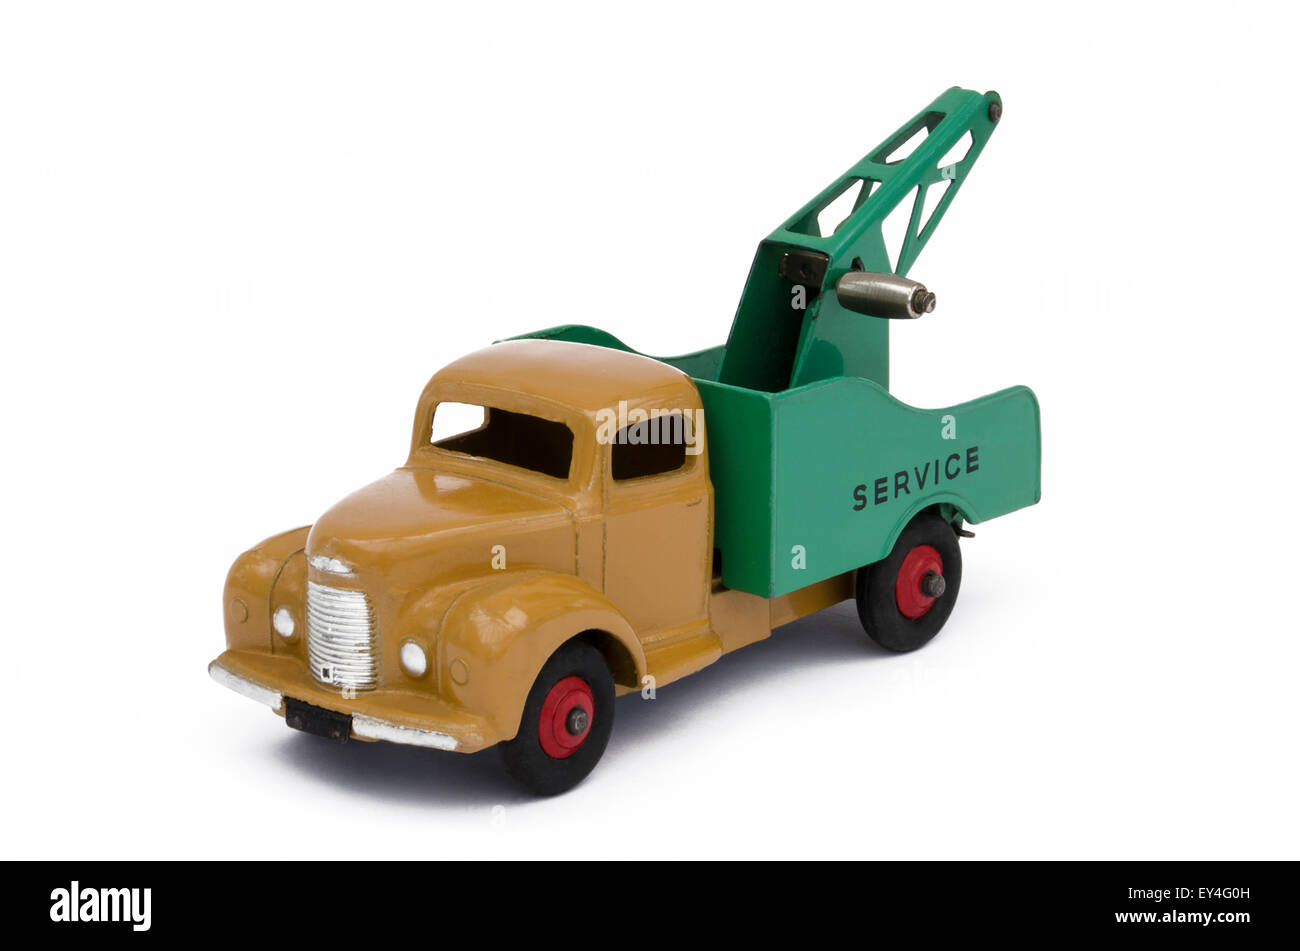 Vintage, brown and green toy towing truck. Isolated against a white background - Stock Image